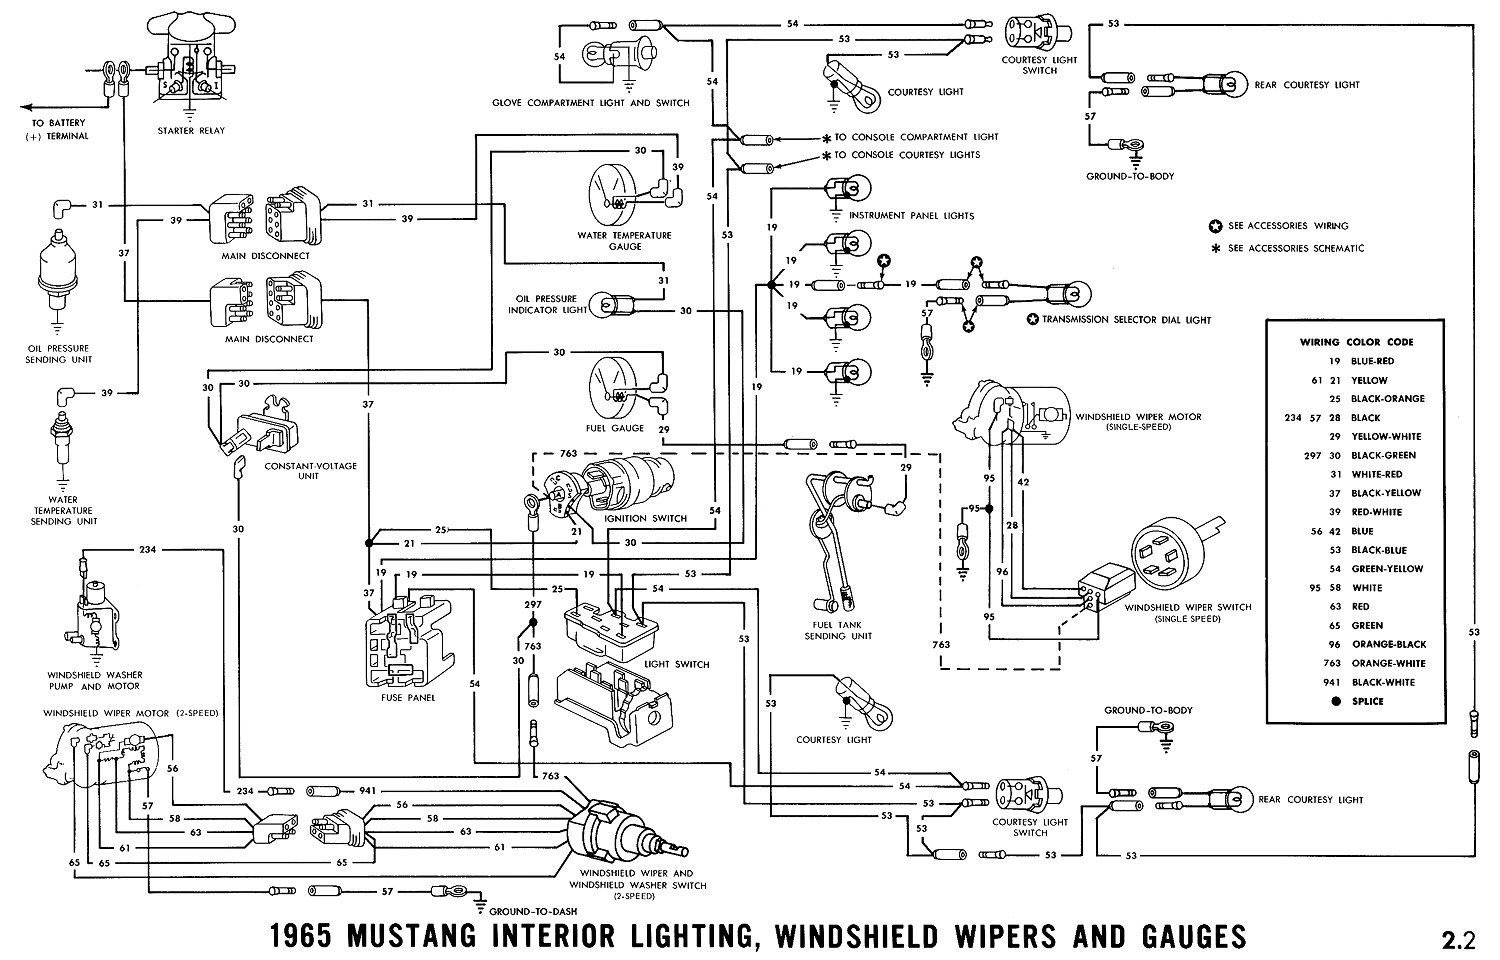 fuse box diagram on wiring diagram as well 1970 ford mustang mach 1 rh ayseesra co